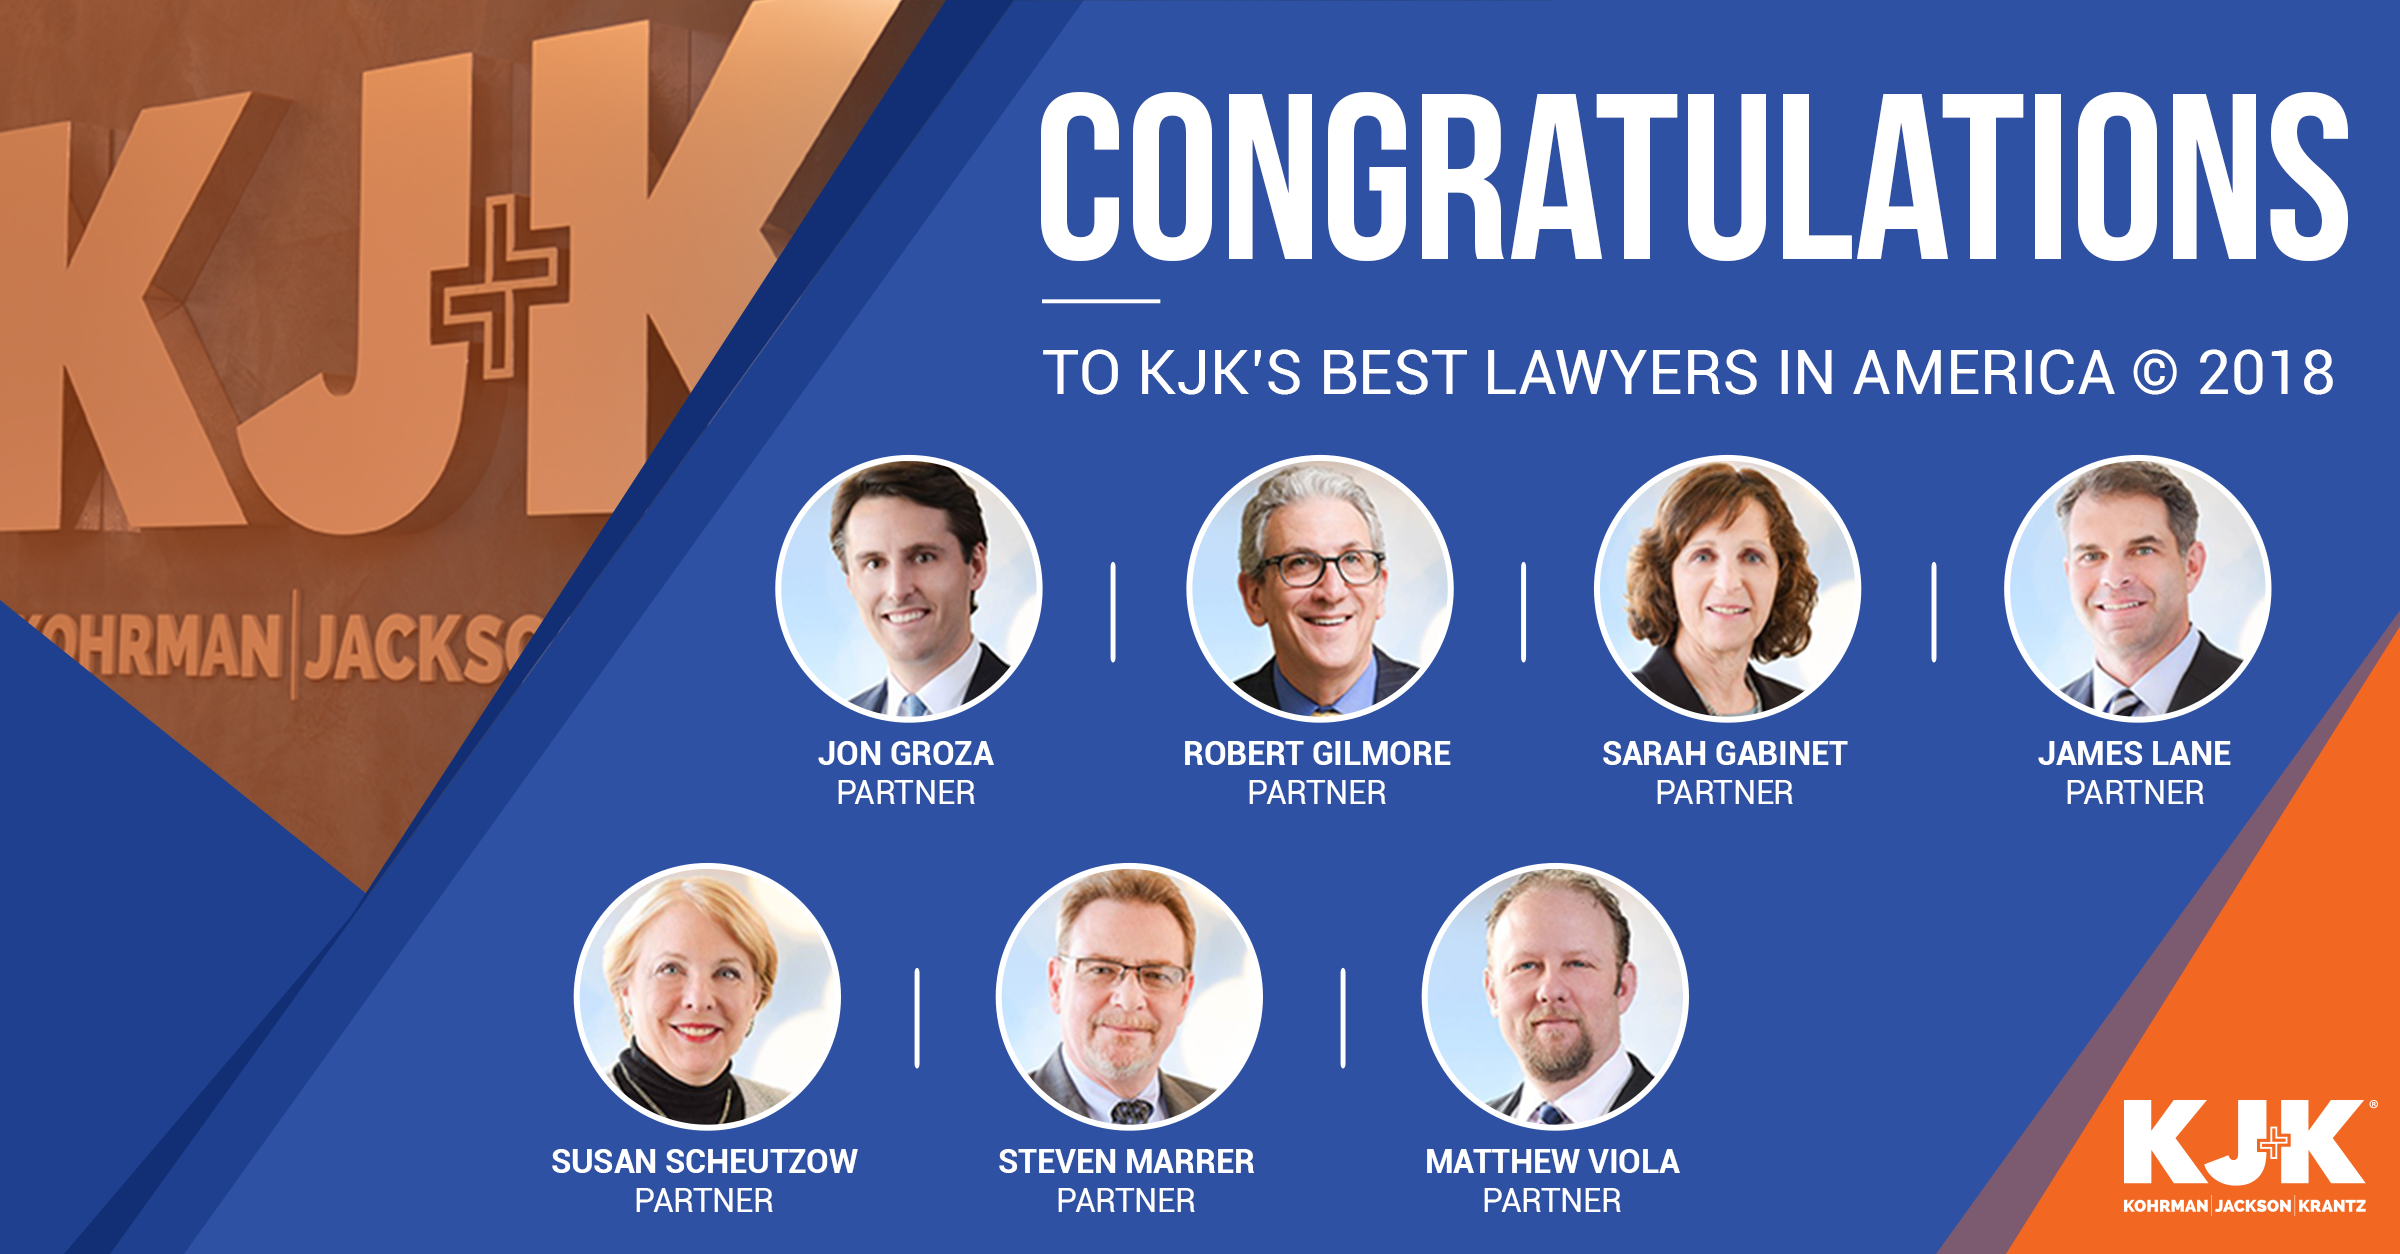 KJK Named Among Top Law Firms in the U S  In Annual